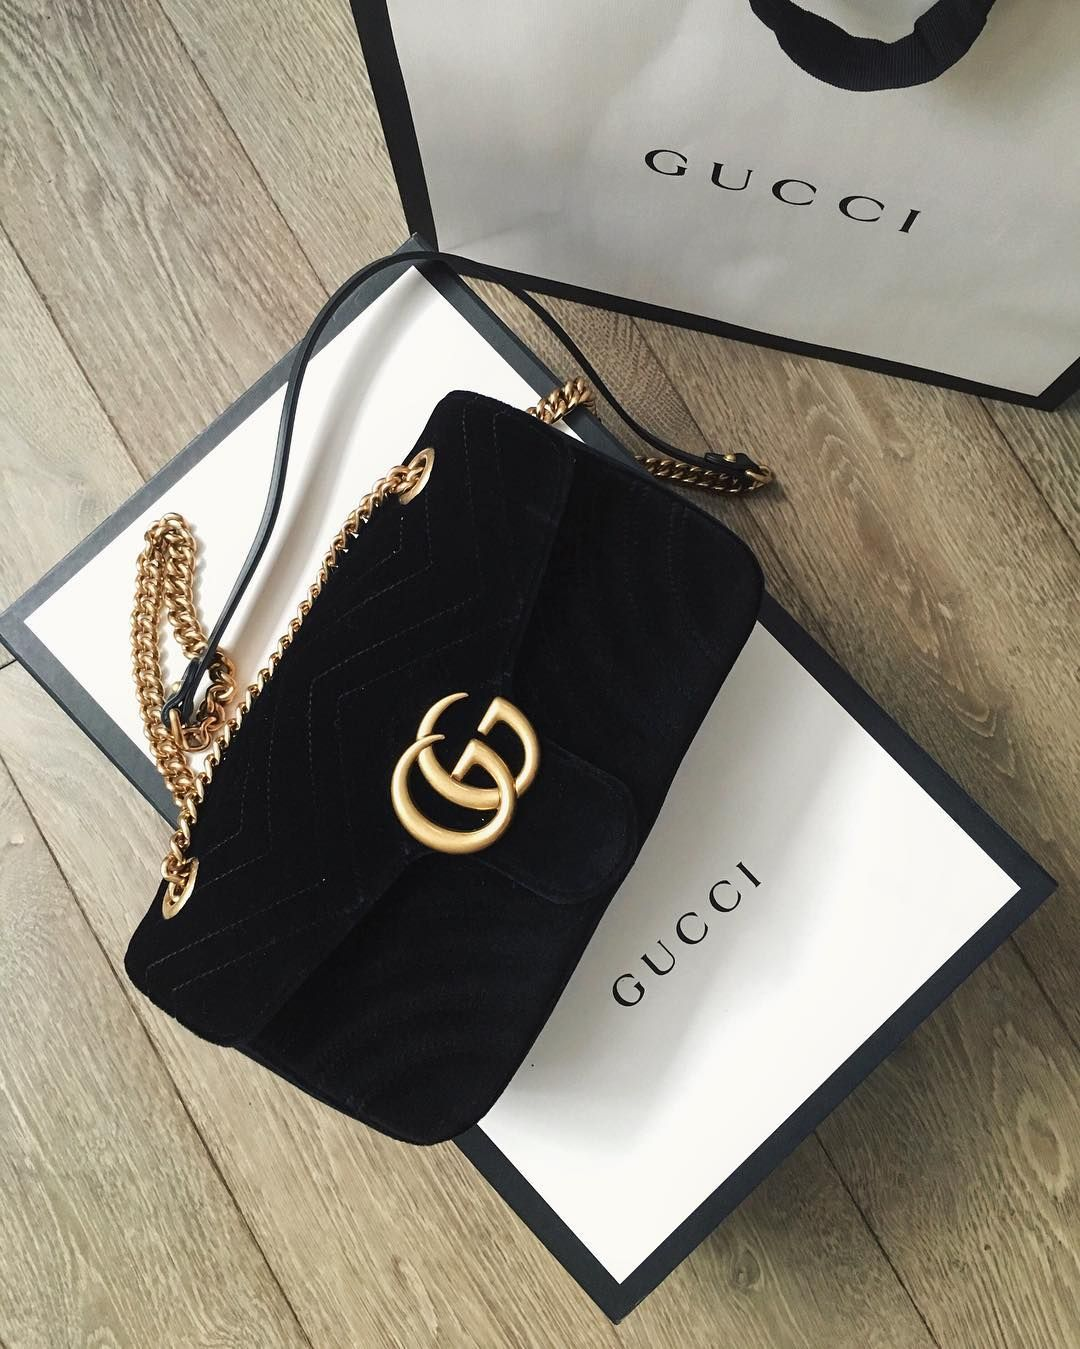 Image result for gucci bag pinterest